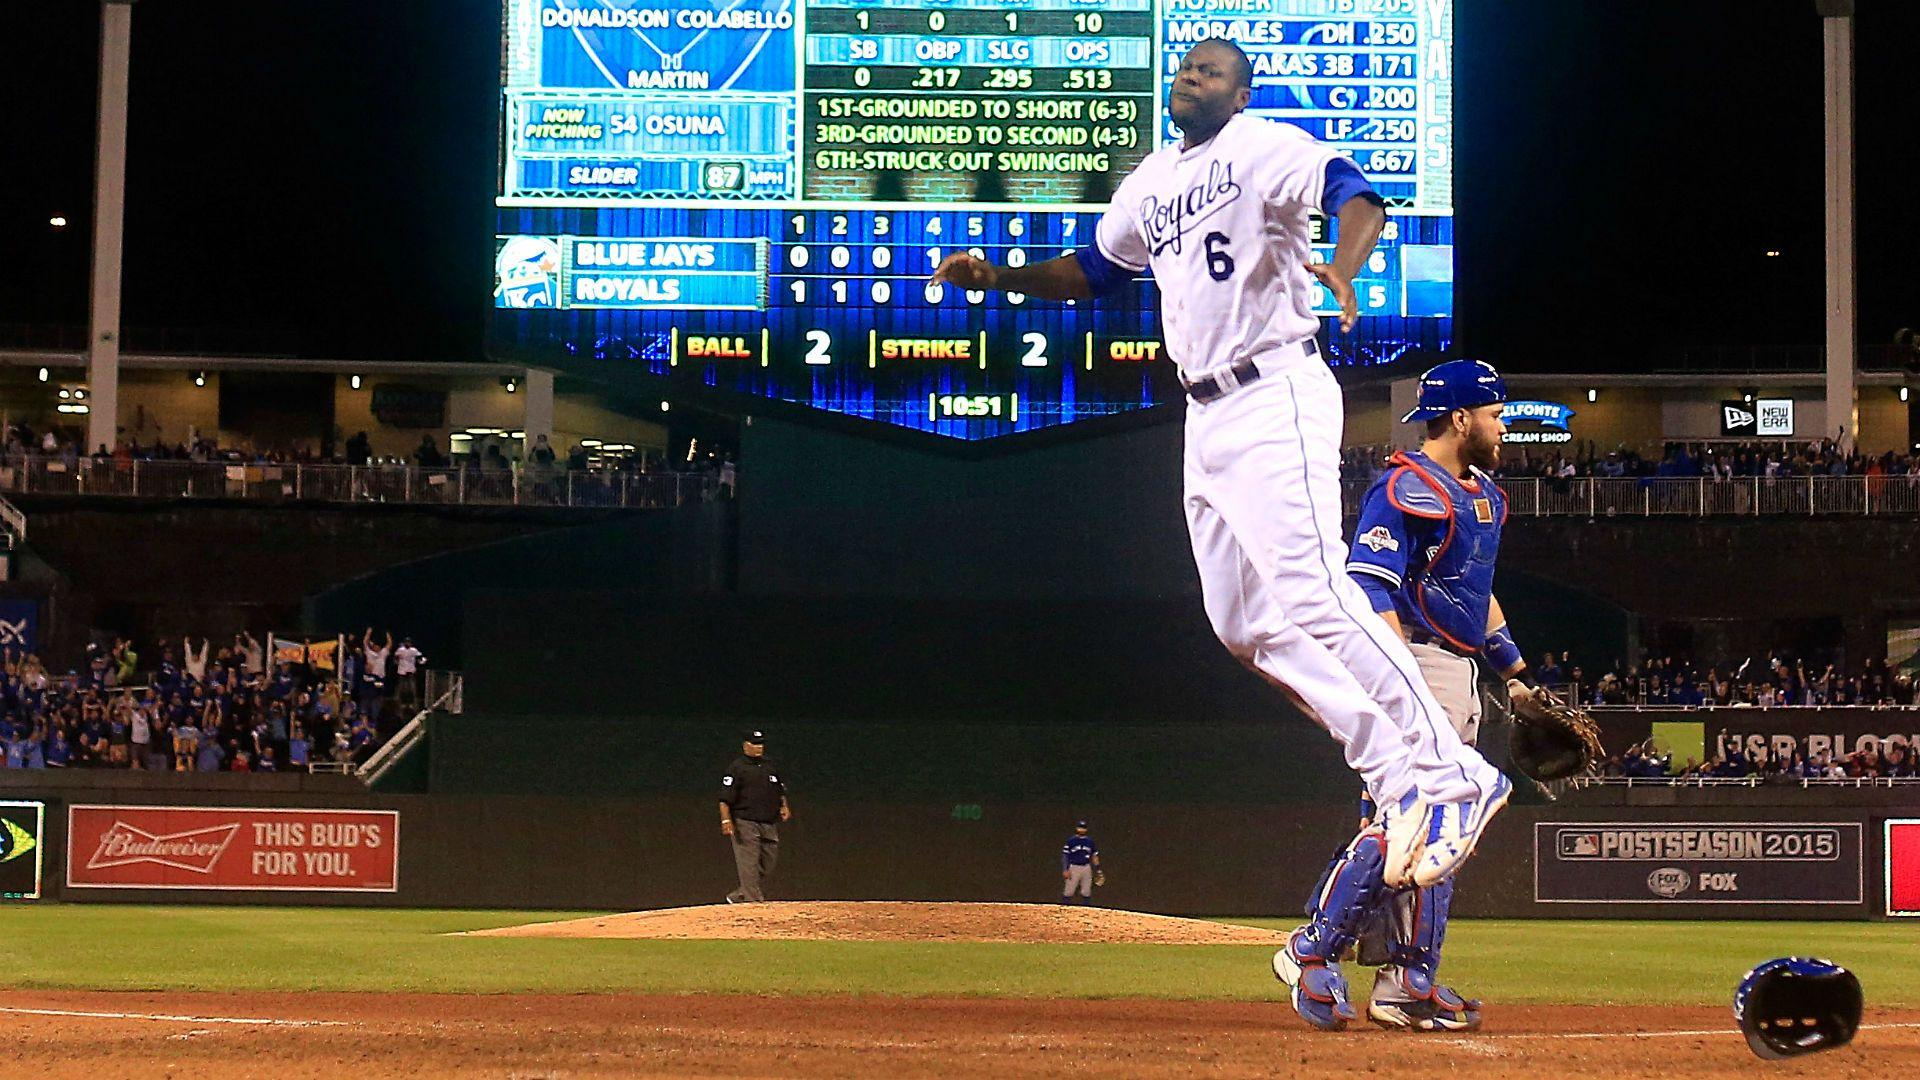 ALCS 2015: Cain's dash helps Royals clinch title, again | MLB ...